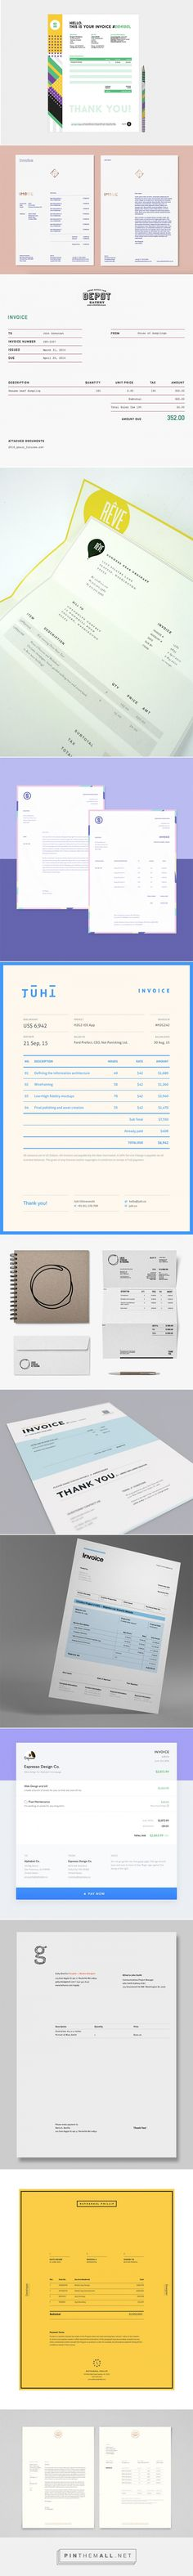 253 Likes, 11 Comments - Nancy Nguyen (@hellothisisnancy) on - invoice creation